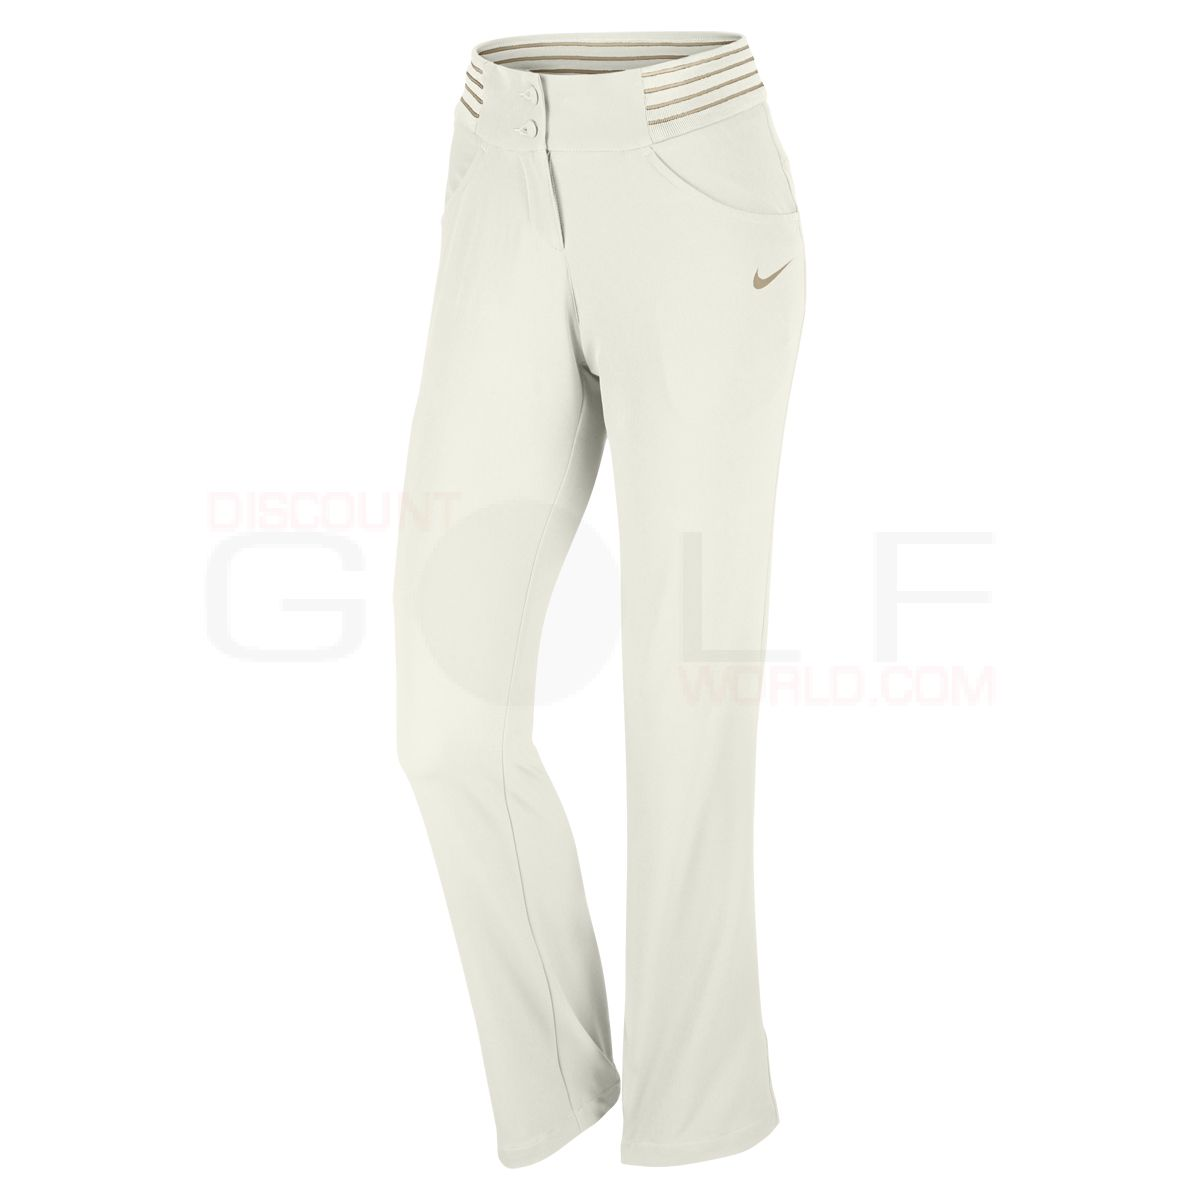 womens golf cargo pants photo - 1